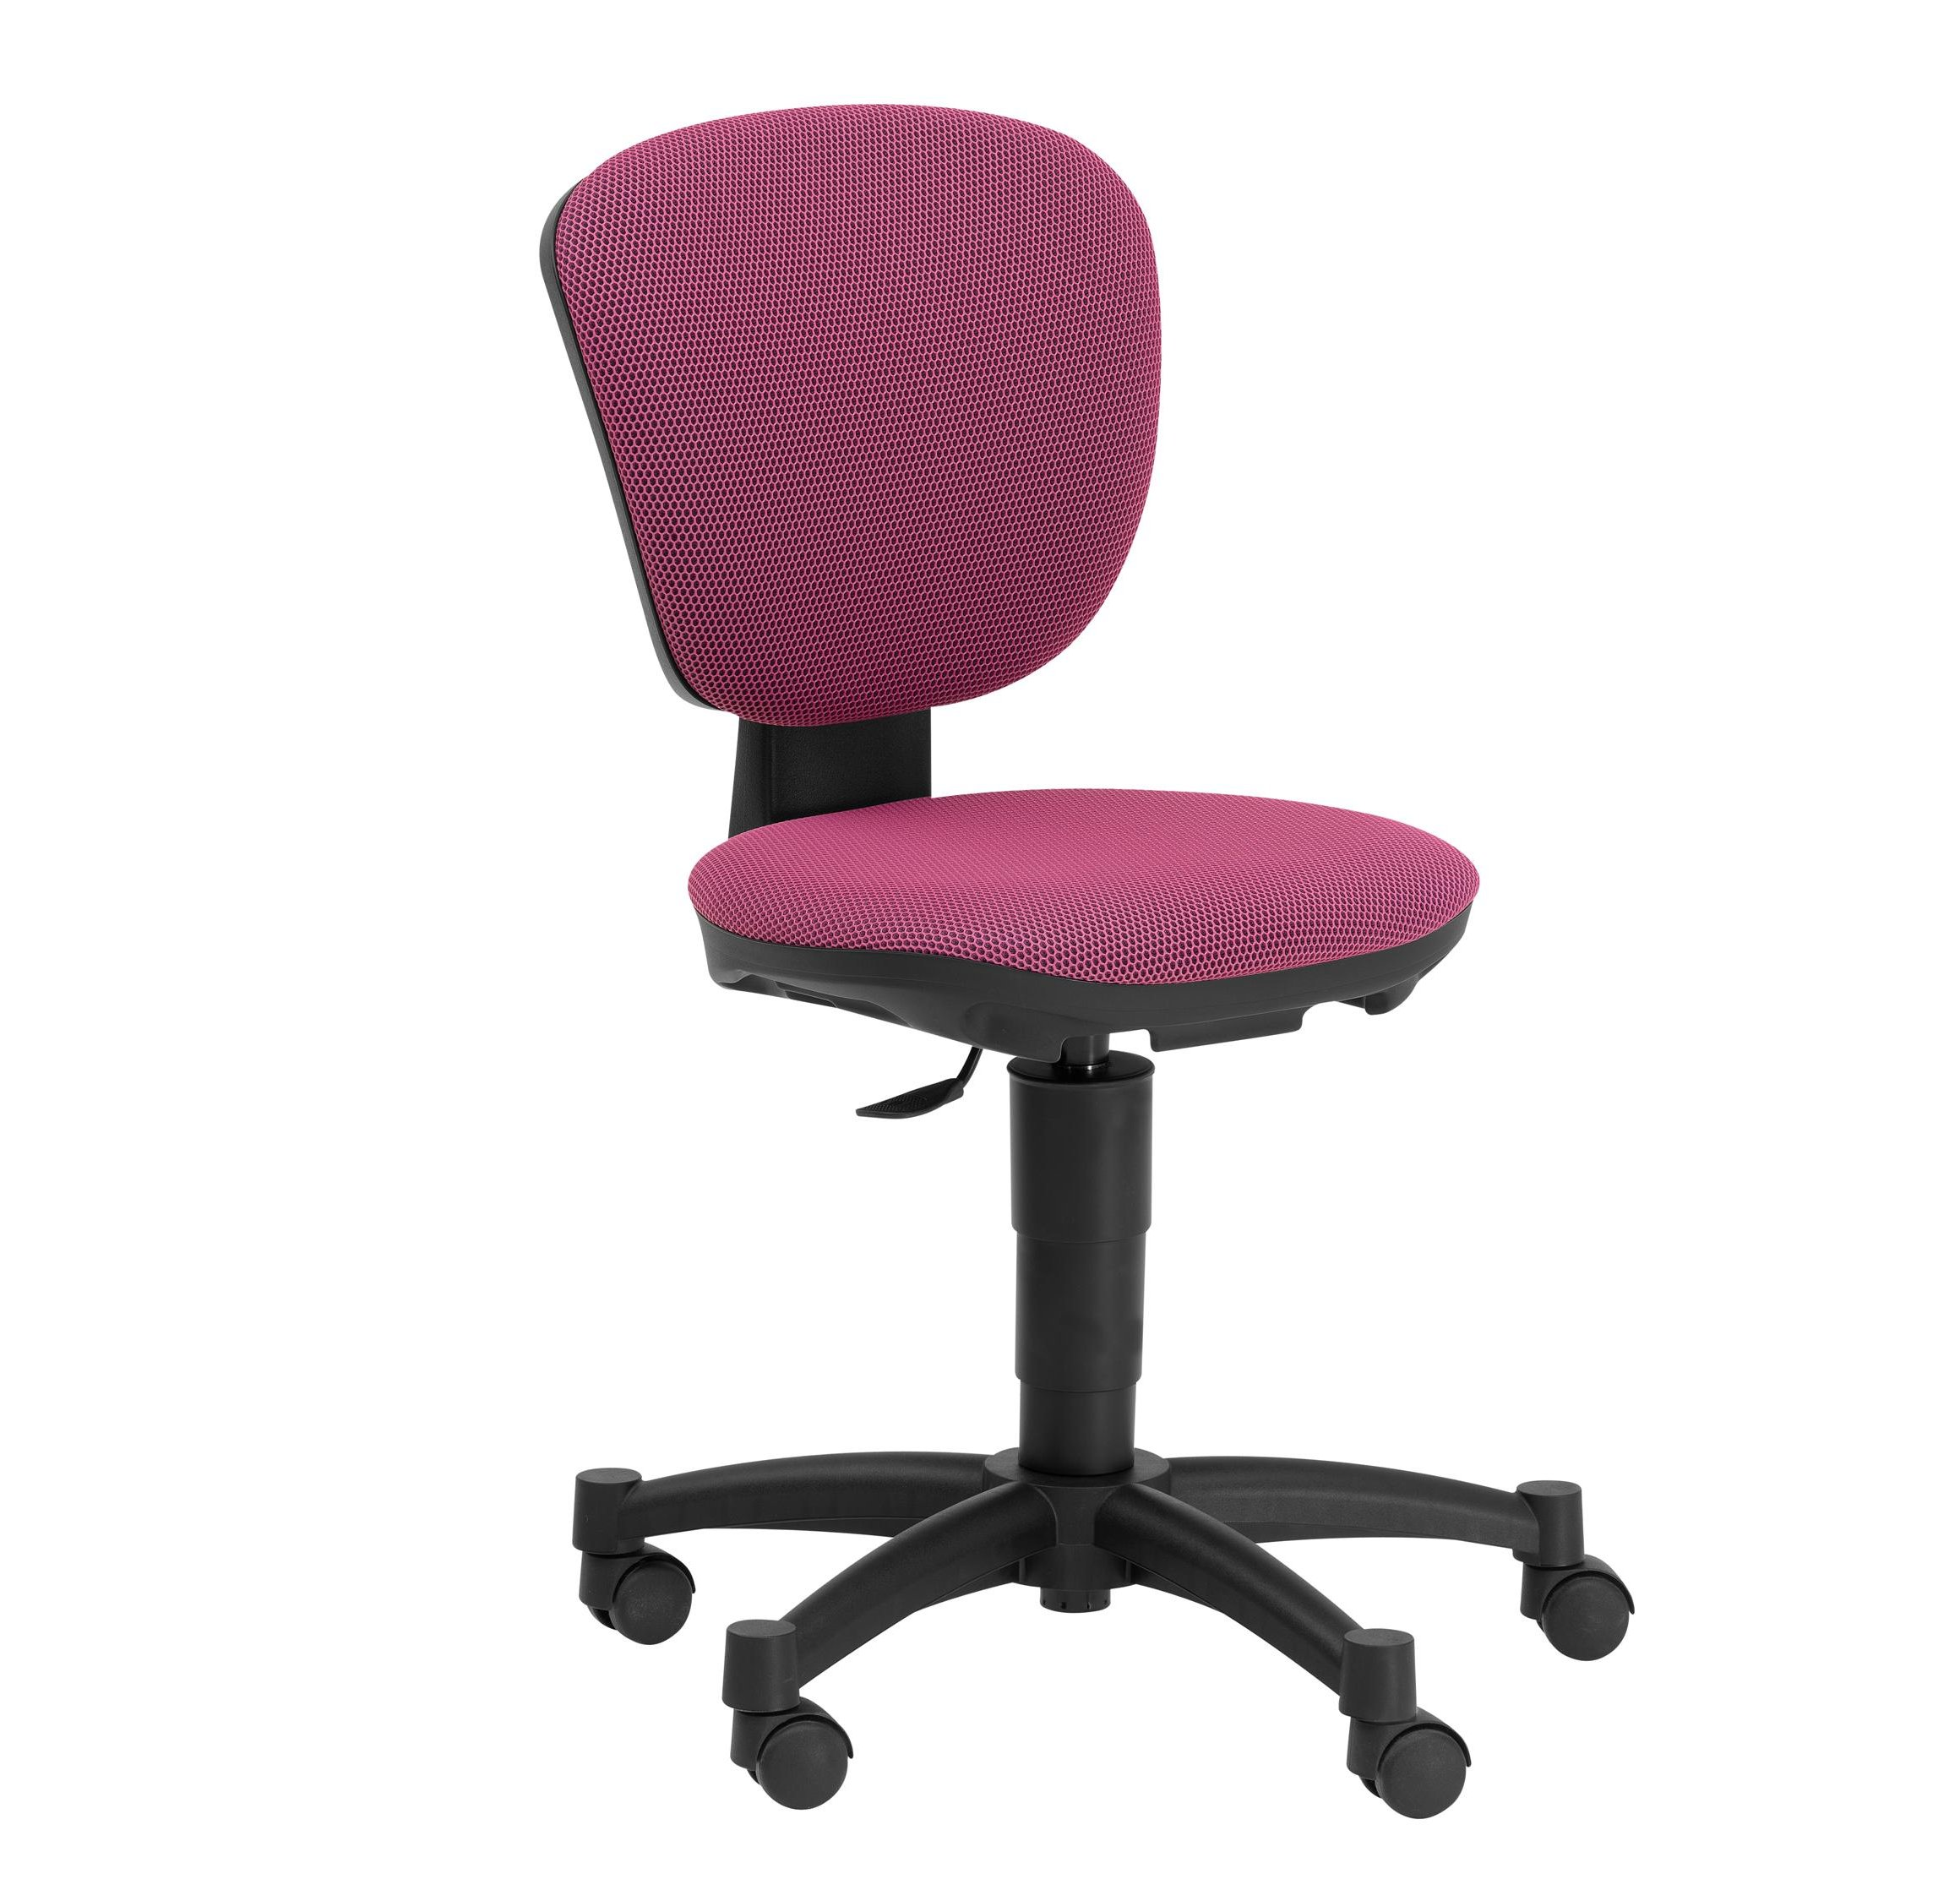 Desk chair pink for children kids in s a for Best desk chair for kids